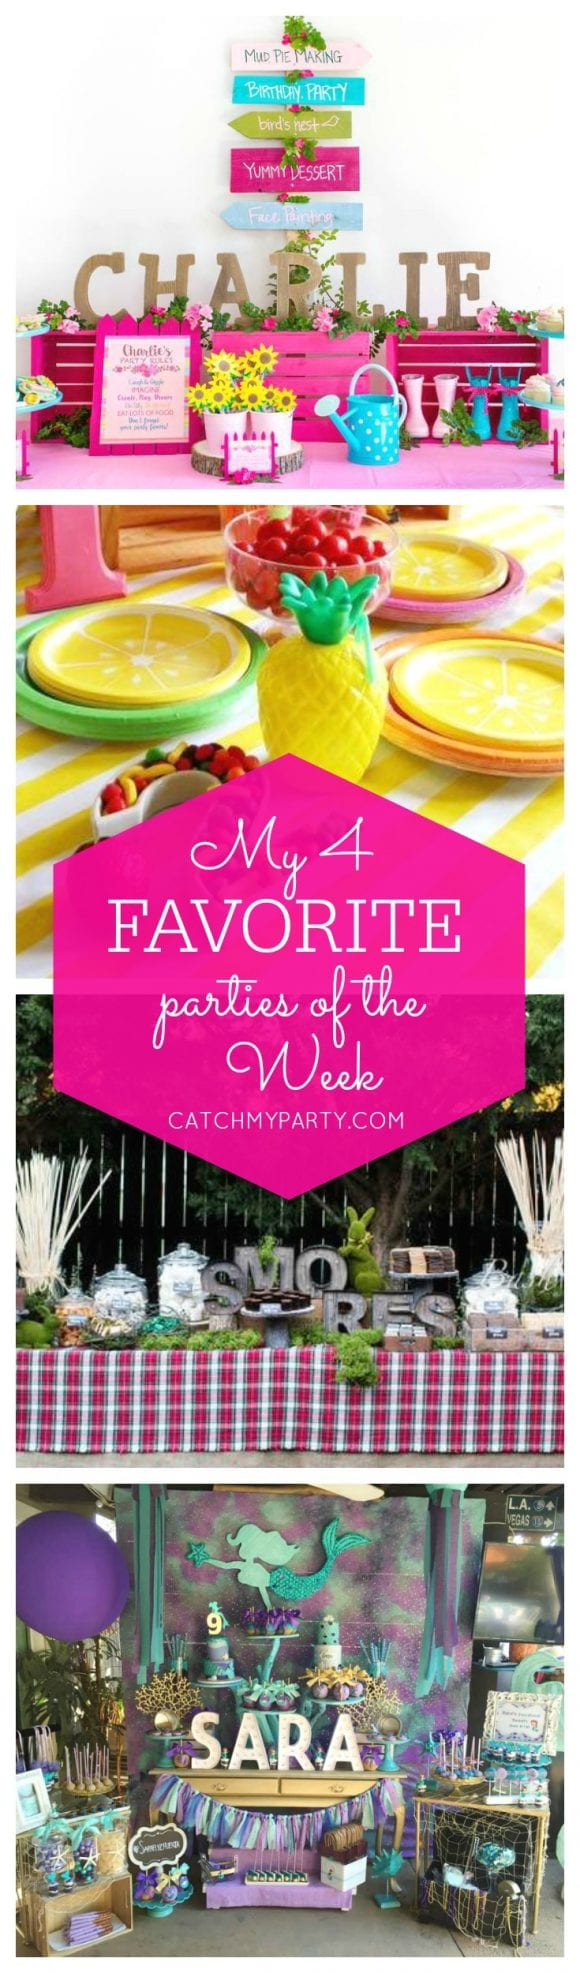 My favorite parties include a WellieWishers American Girl party, a two-tti frutti party, a s'mores bar and a mermaid party | Catchmyparty.com